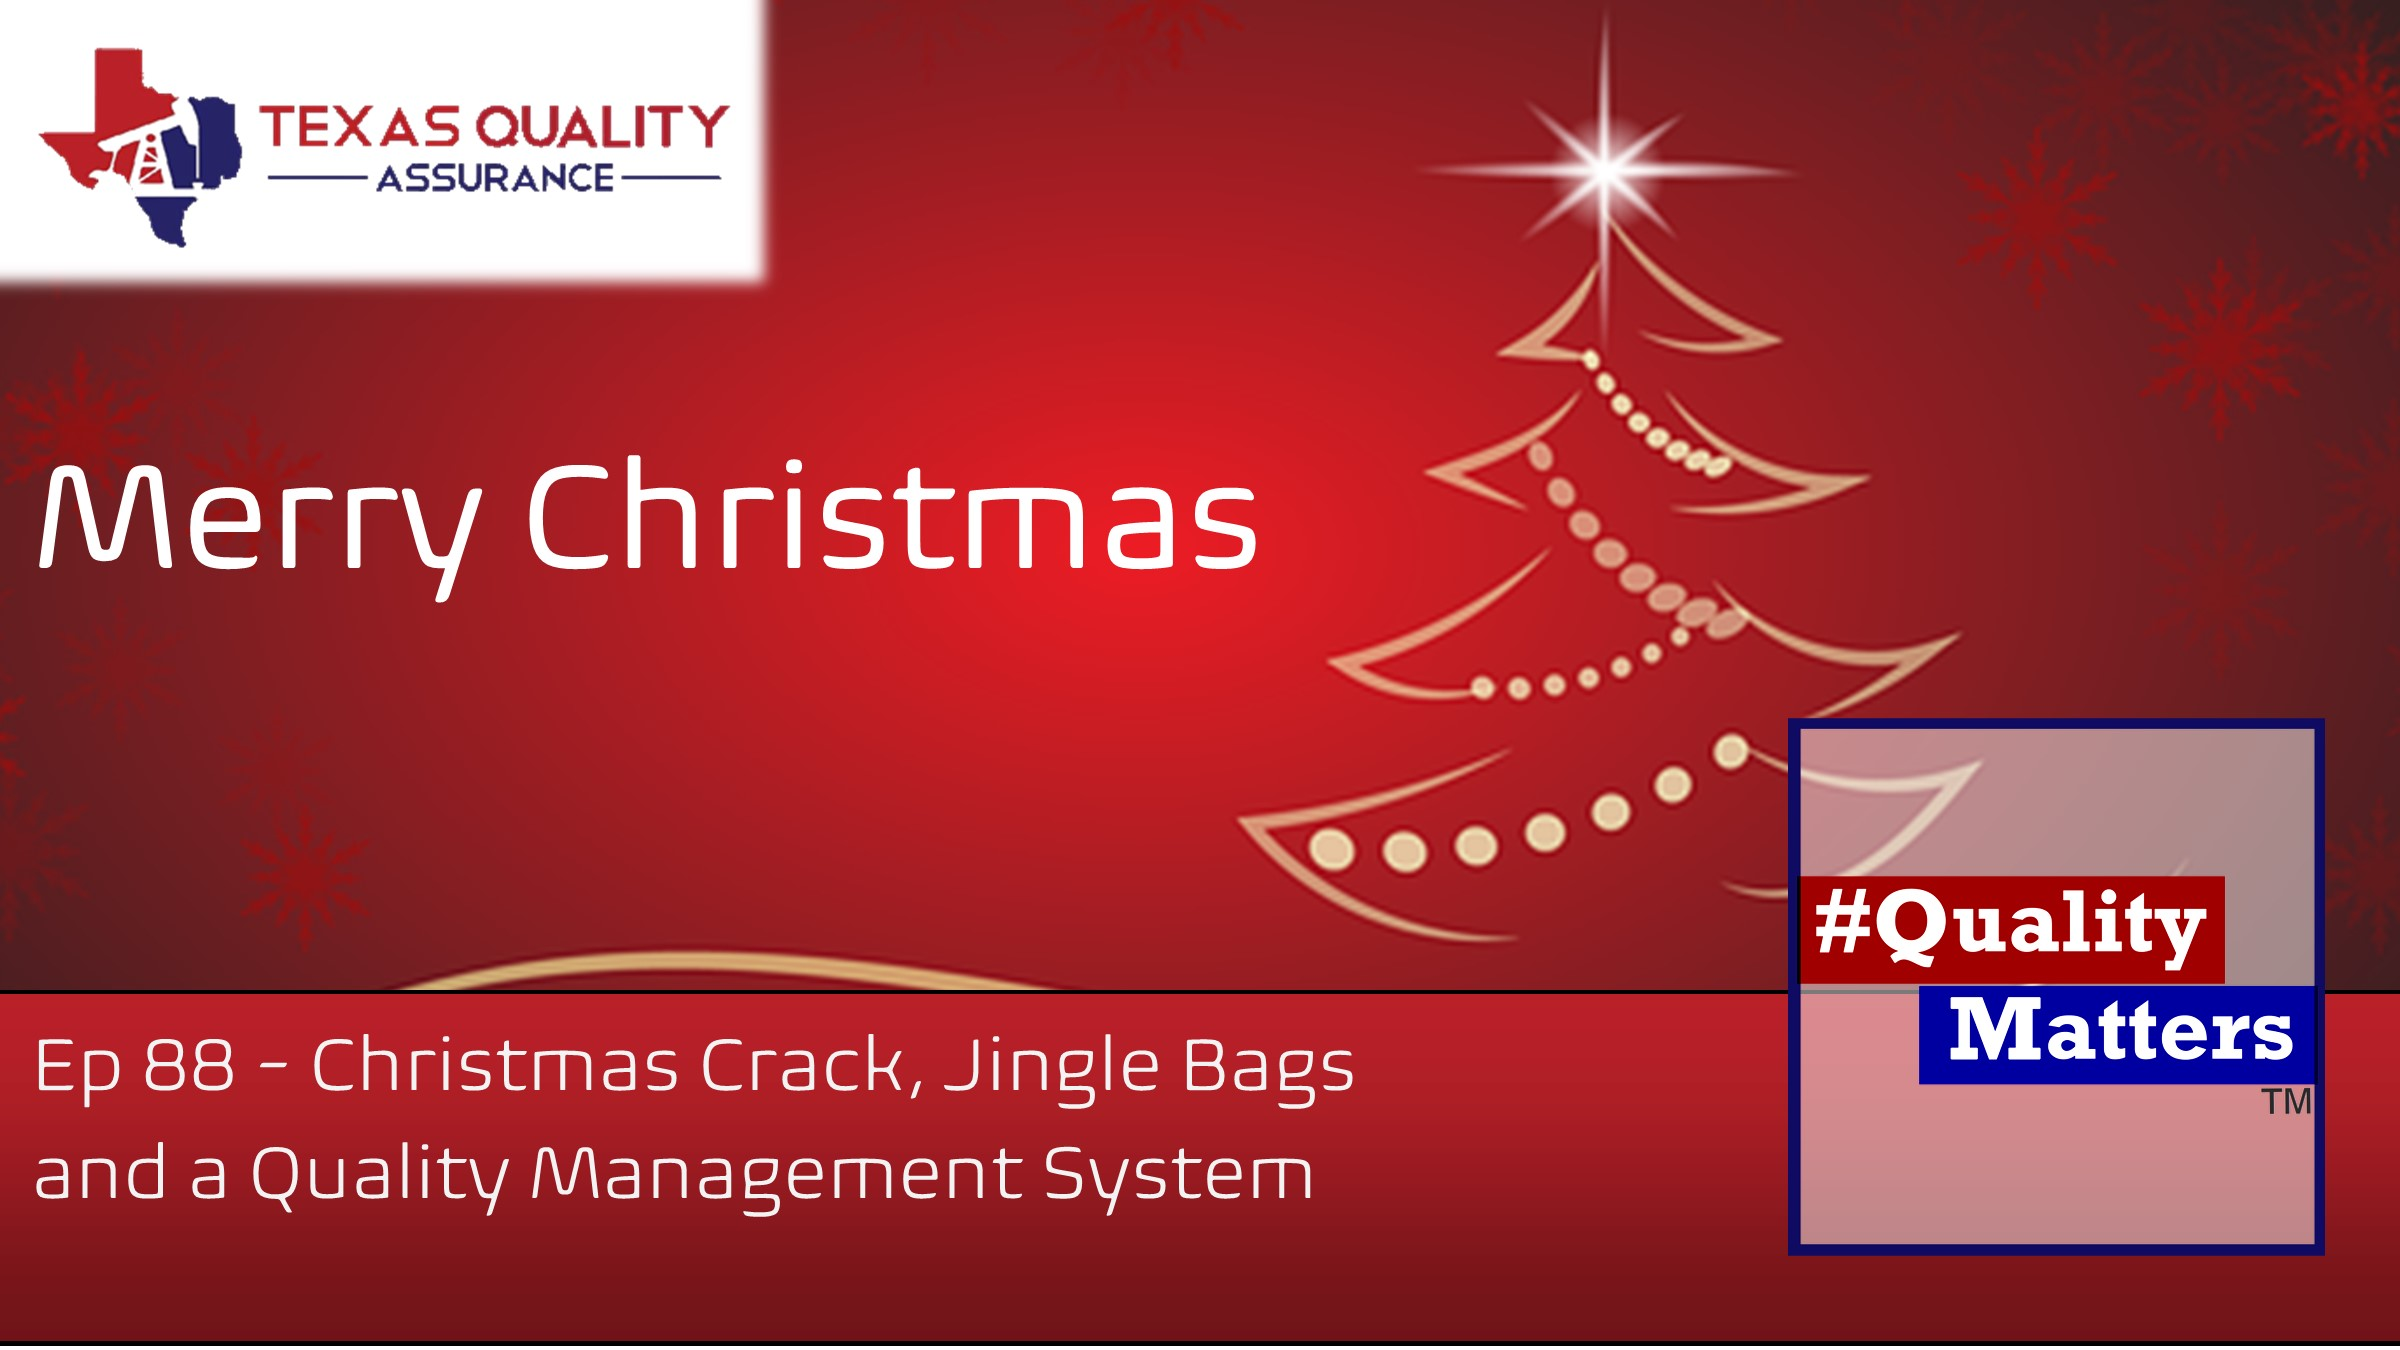 Ep 88 – Christmas Crack, Jingle Bags and a Quality Management System